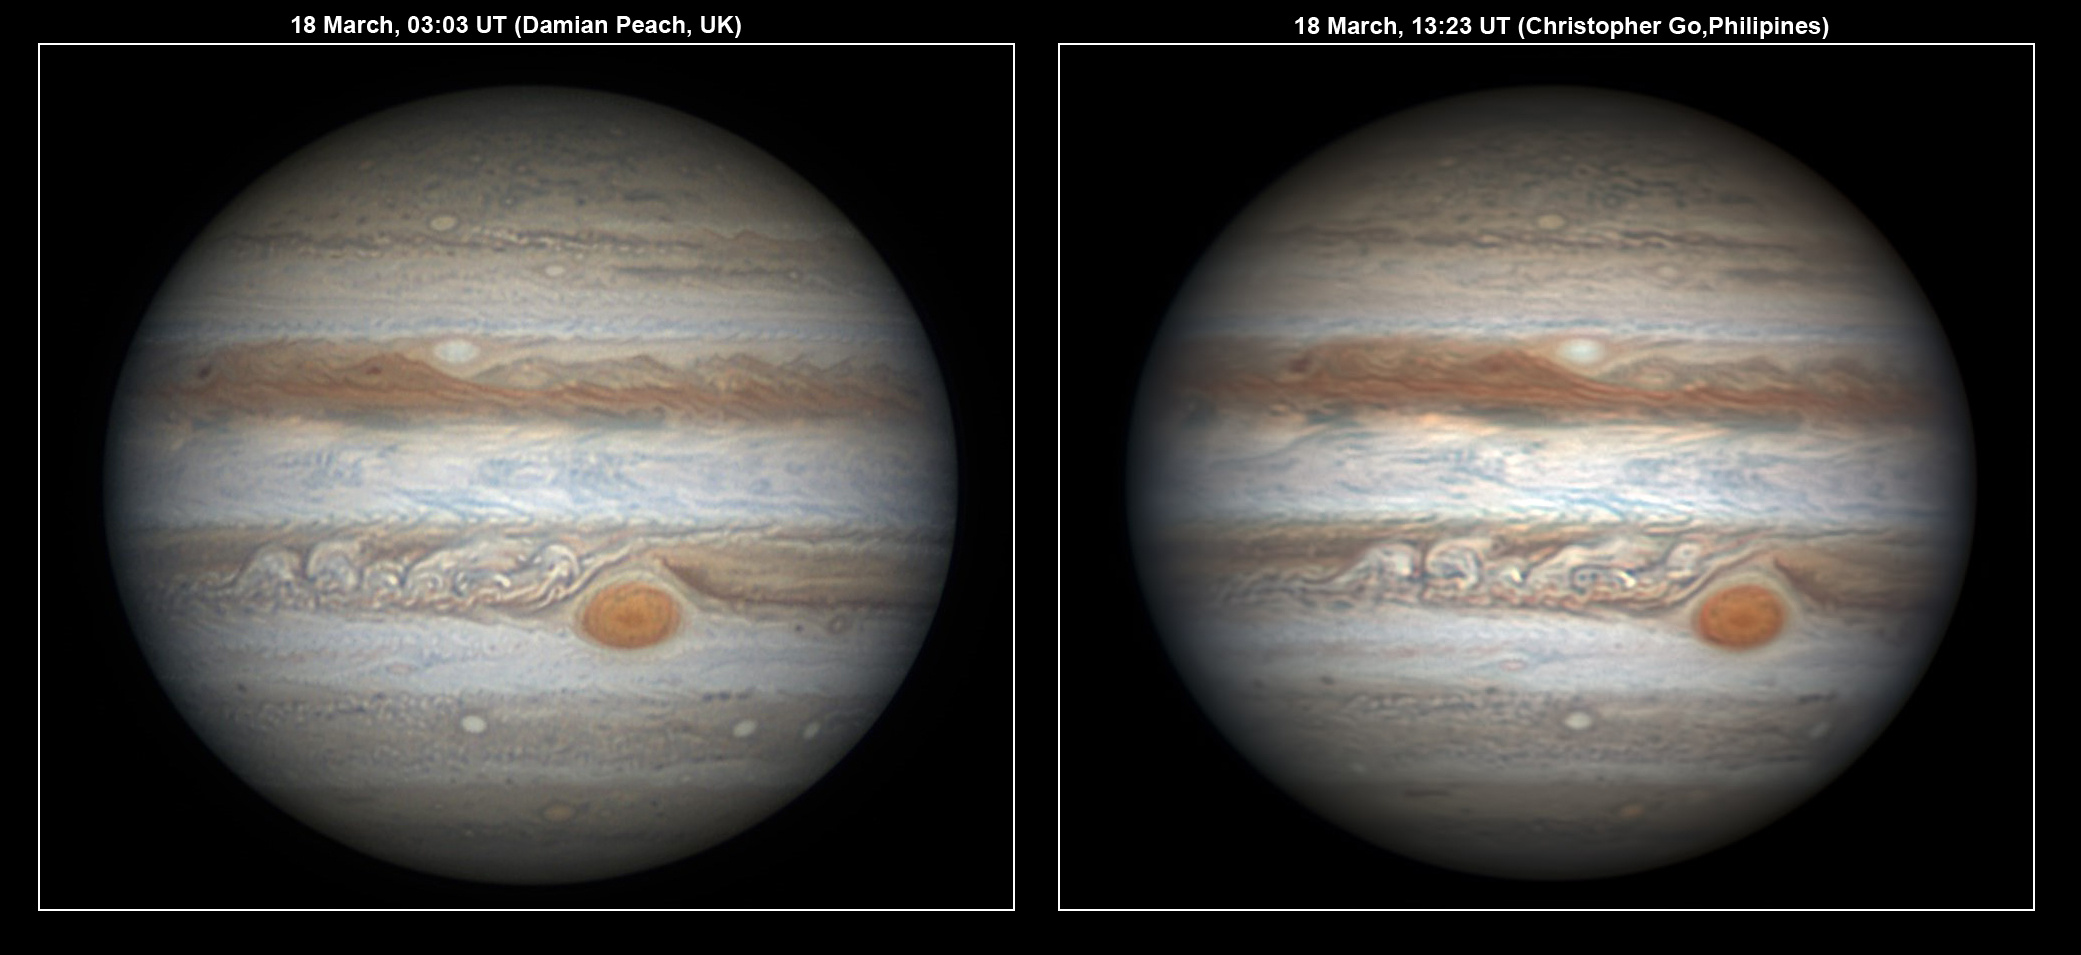 Scientists expect to characterise the state of Jupiter's atmosphere from high-resolution observations obtained by amateur astronomers. By comparing images of Jupiter obtained from different locations on Earth over time, they can observe the same areas of the planet repeatedly and obtain information such as the intensity of the winds and the activity of storms in the planet. The image on the left was obtained using a 40-cm diameter telescope and a fast black and white camera equipped with colour filters by Damian Peach during a trip to Barbados. The image on the right was obtained by Christopher Go from the Philippines using similar equipment. Image credit: D. Peach/C. Go.